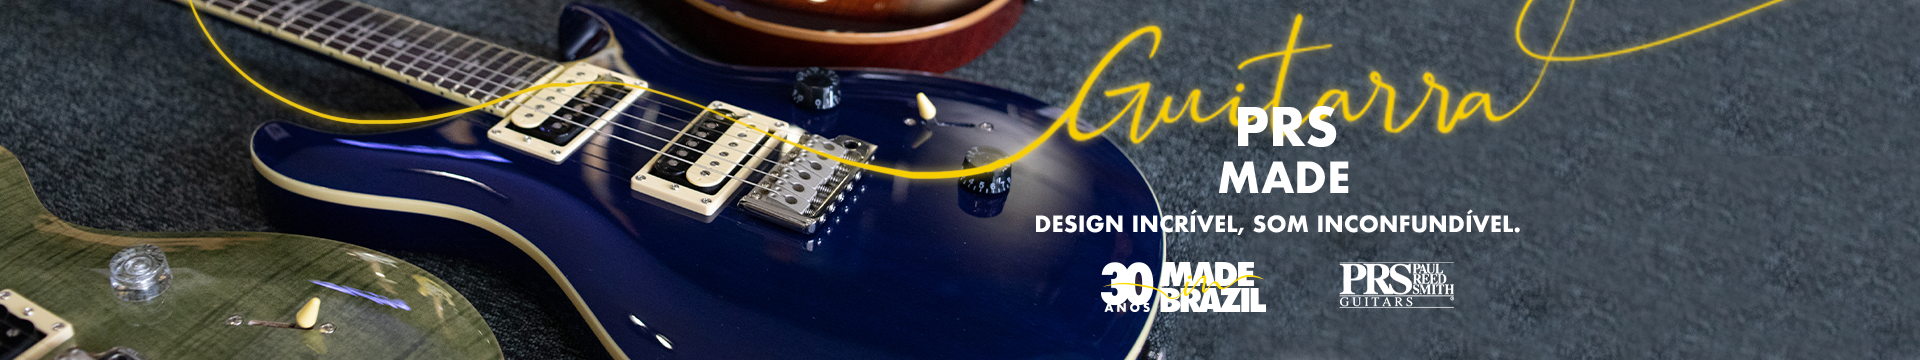 Guitarras PRS modelos exclusivos na Made in Brazil